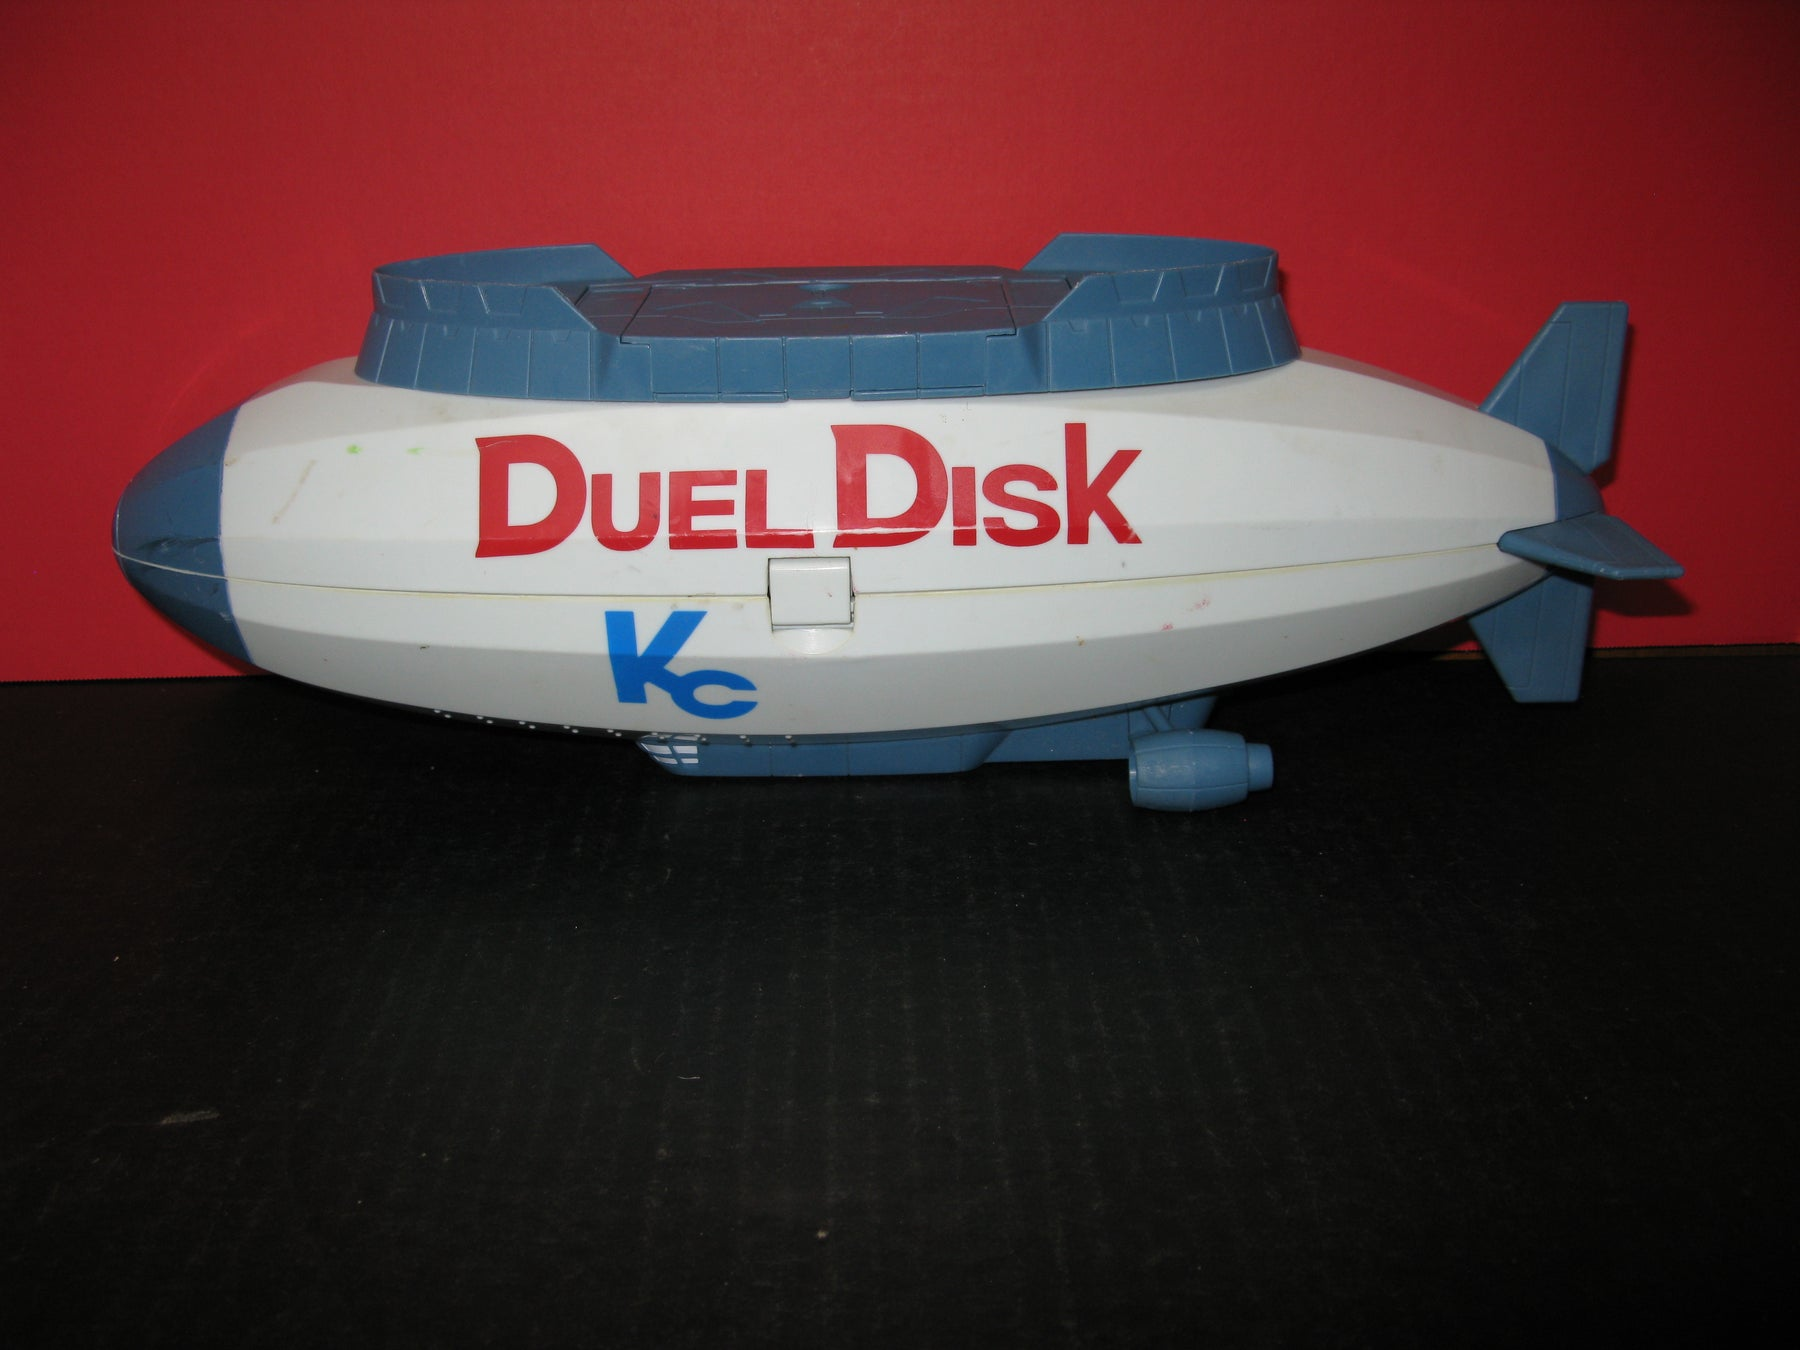 Vintage 1996 Yu-Gi-Oh Duel Disk Kaiba Starship Blimp Storage Carrying Case